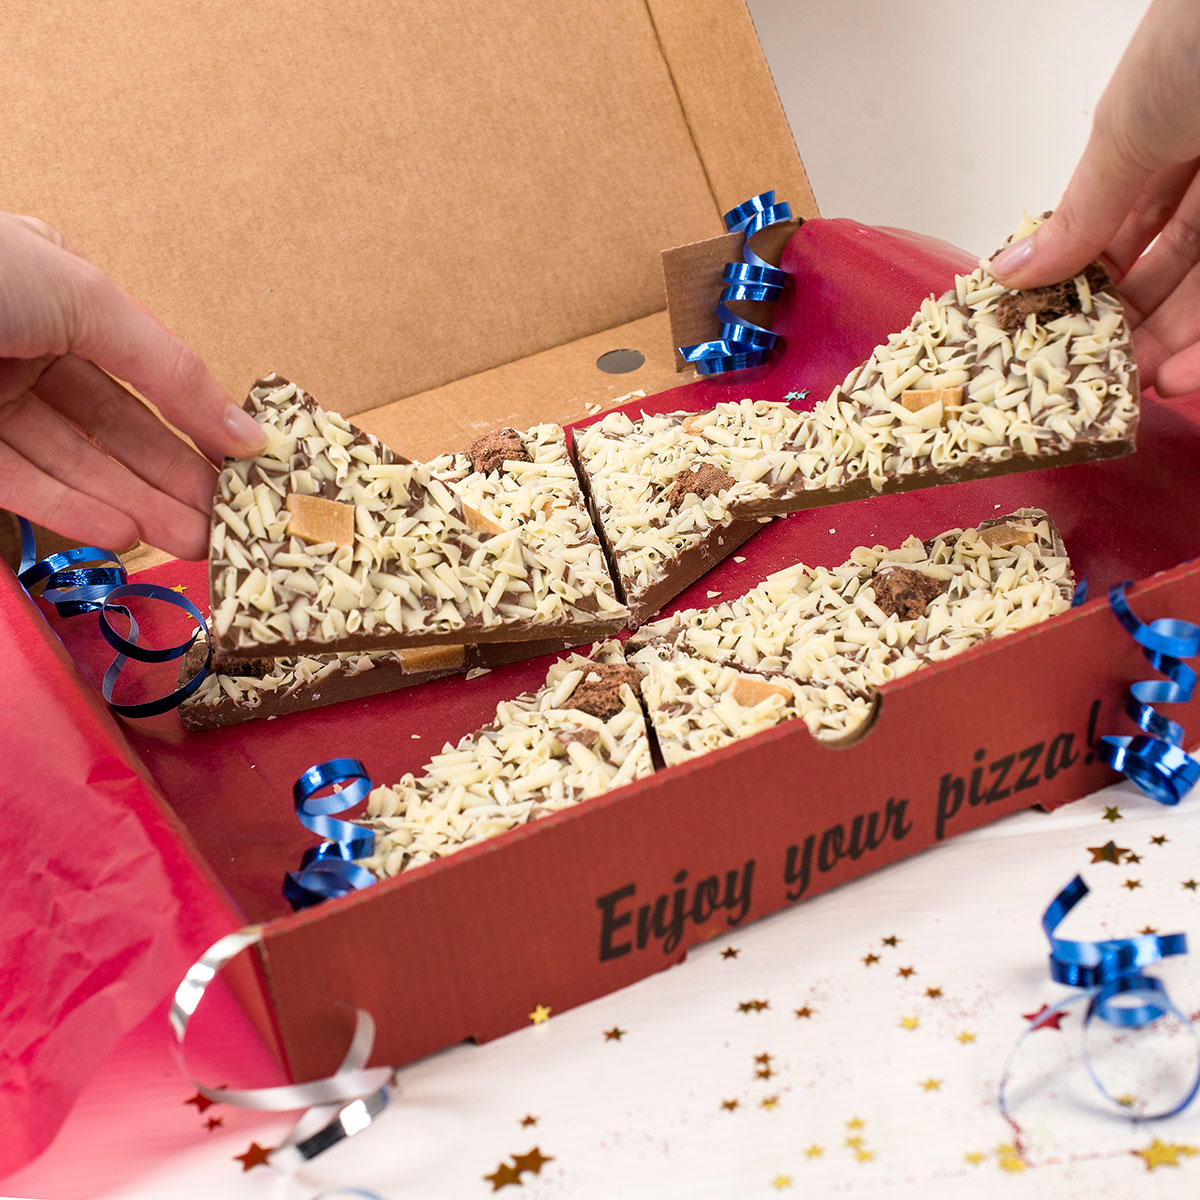 18th Birthday Chocoholics Pizza Unusual Gifts From